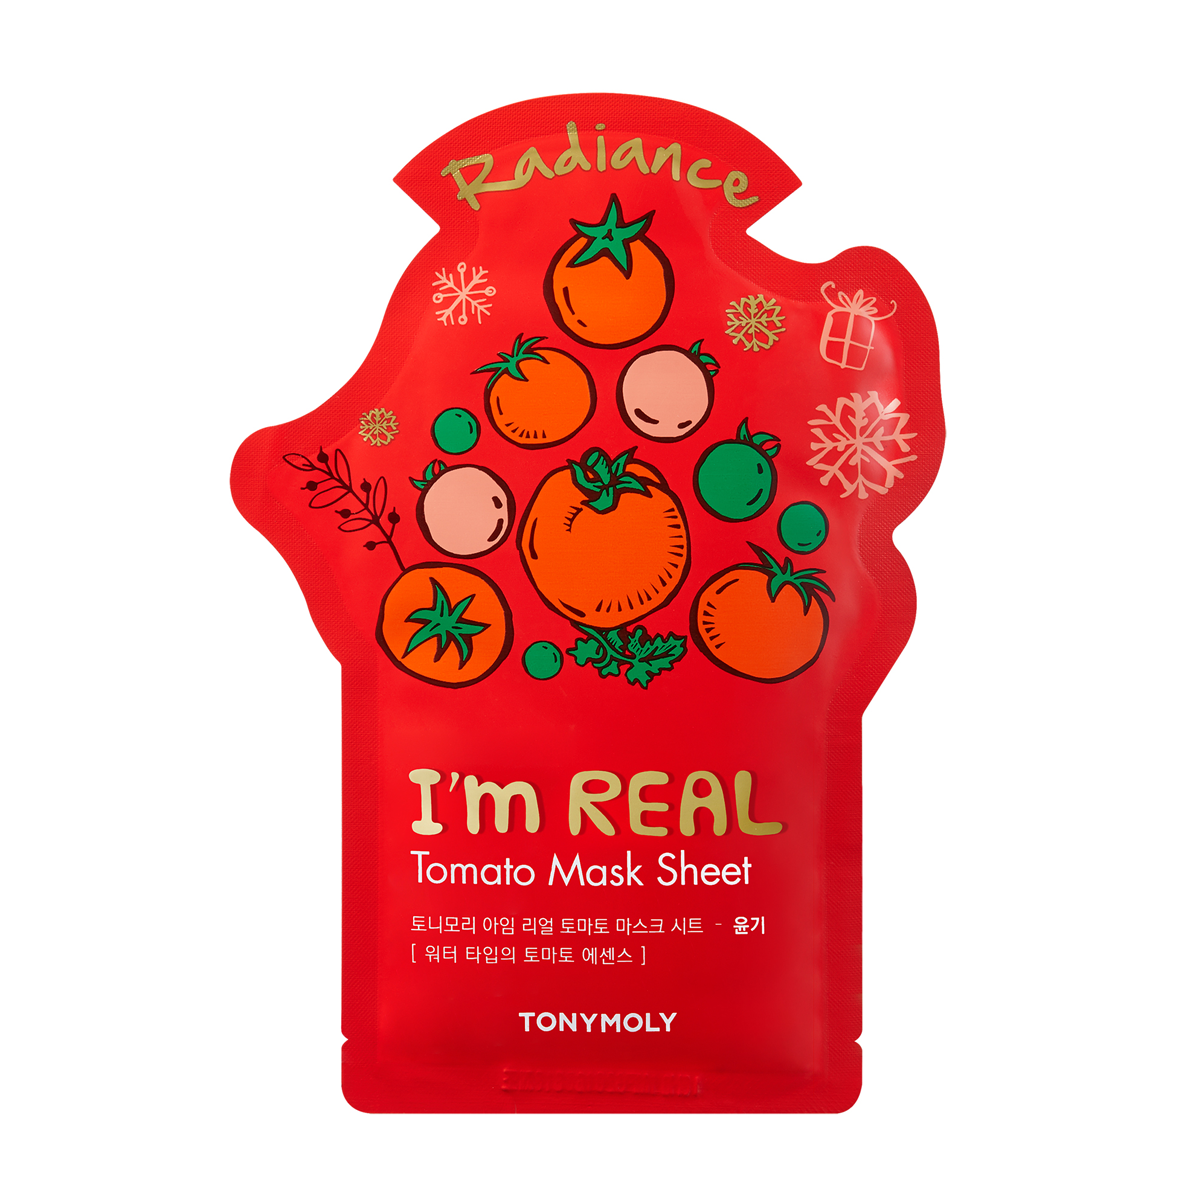 I'm Real Red Wine Sheet Mask by TONYMOLY #22